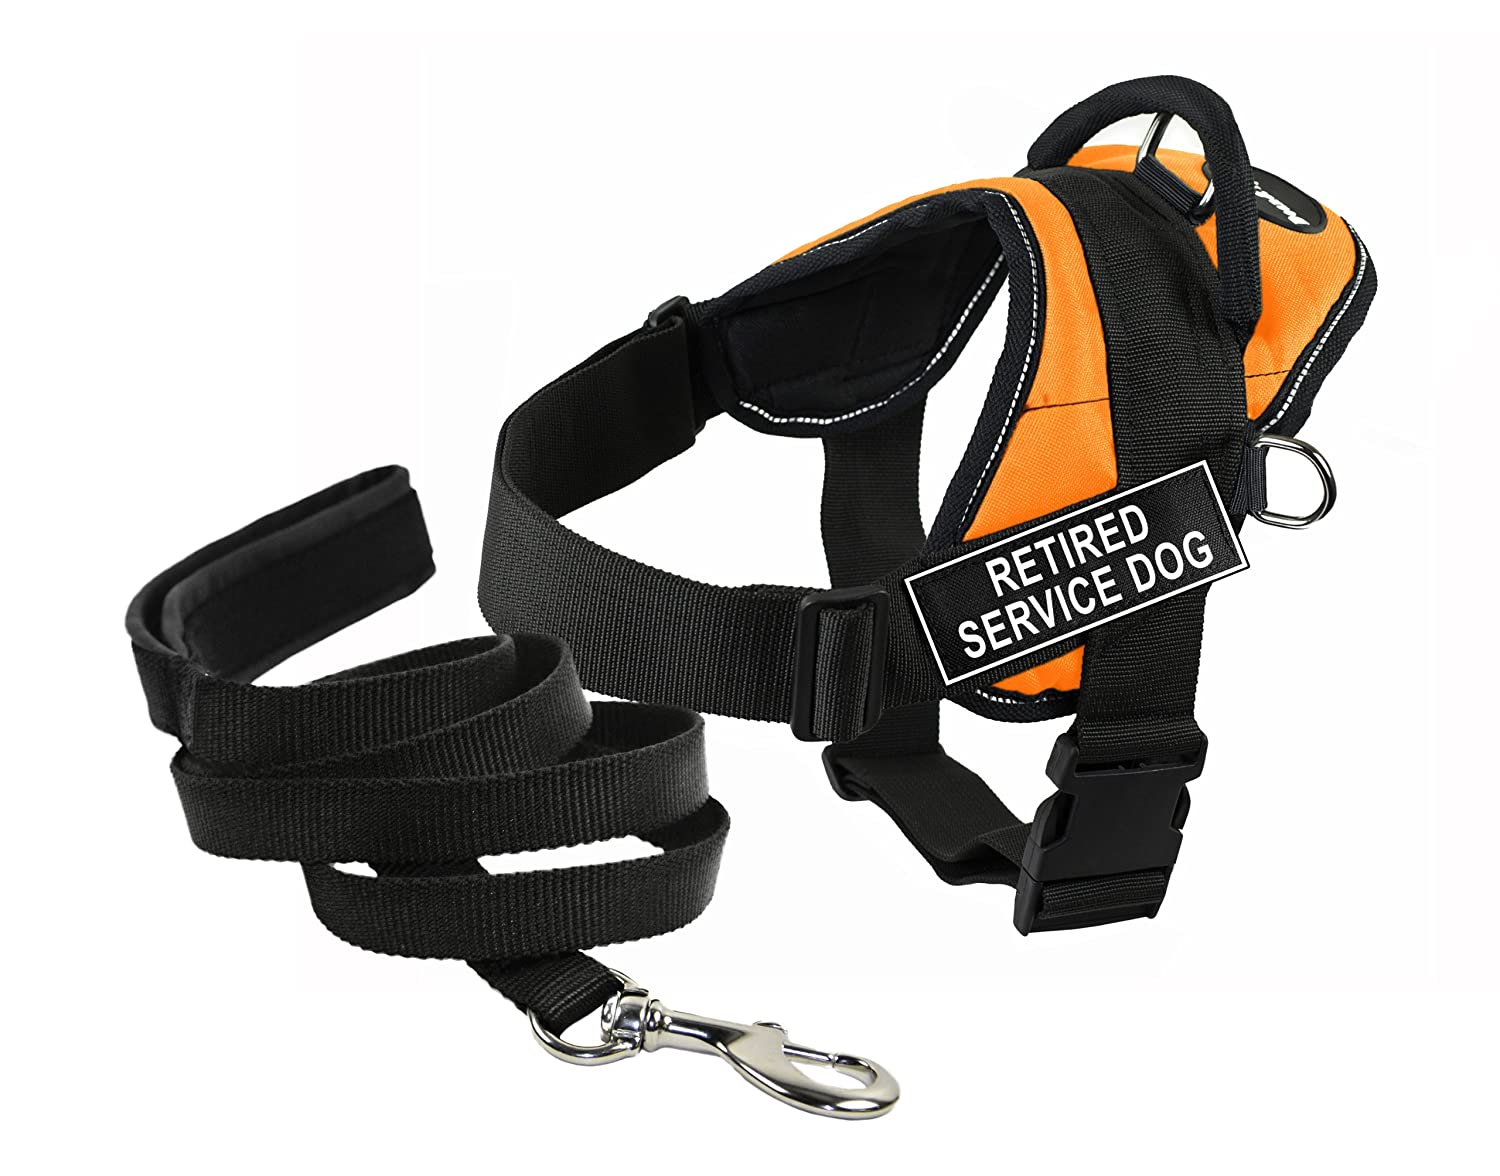 Dean & Tyler's DT Works orange RETIRED SERVICE DOG Harness with Chest Padding, X-Small, and Black 6 ft Padded Puppy Leash.